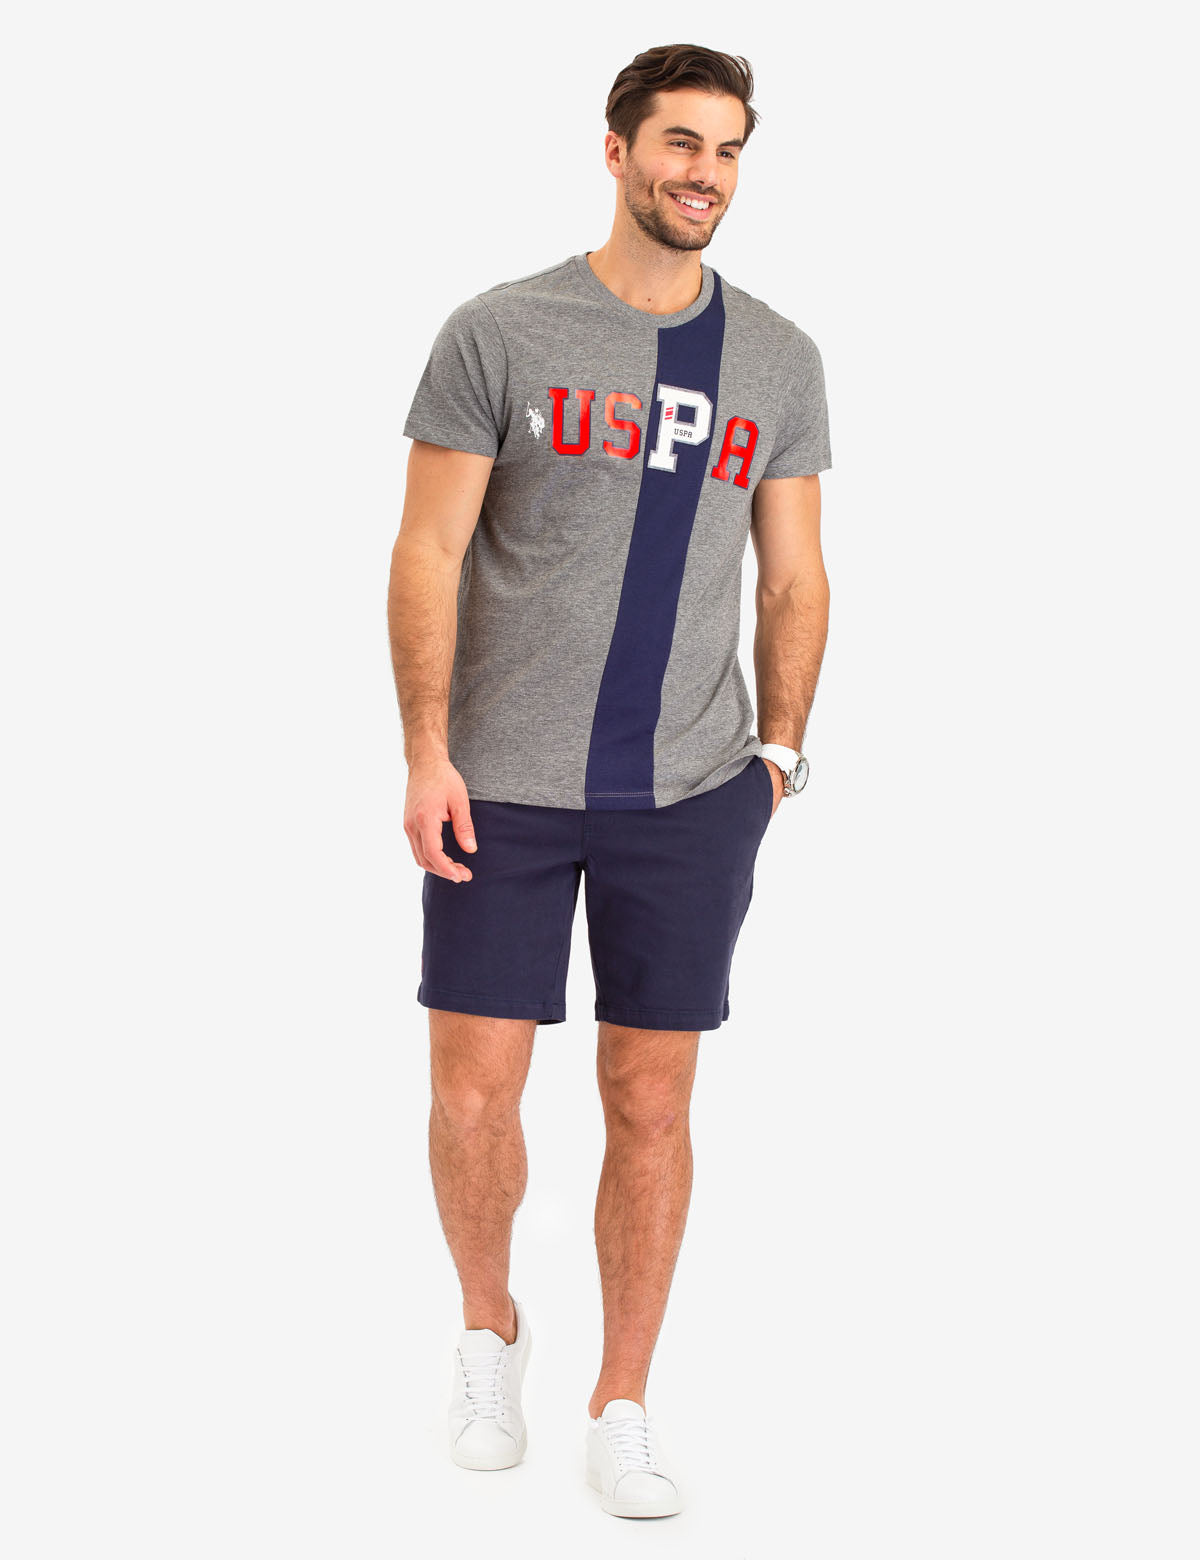 VERTICAL STRIPE USPA T-SHIRT - U.S. Polo Assn.